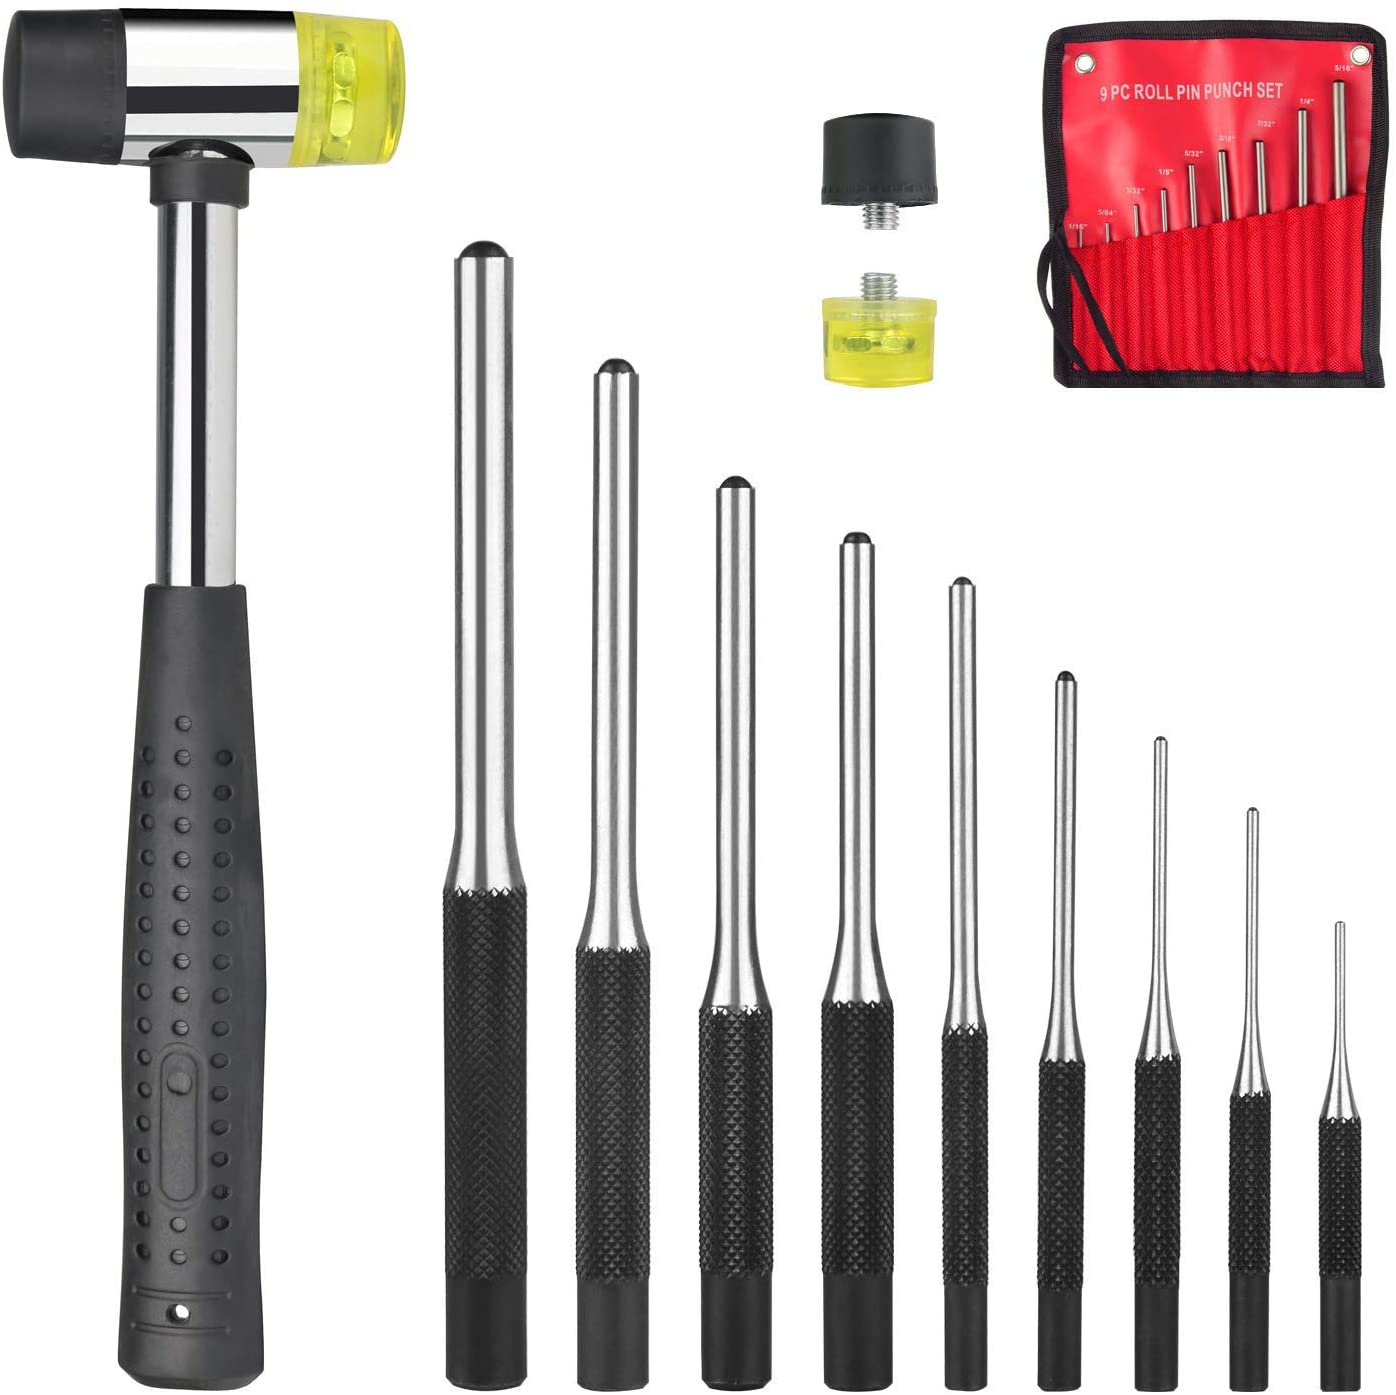 Feyachi Roll Pin Punch Set with Storage Pouch, 9 Piece Steel Removal Tool Kit